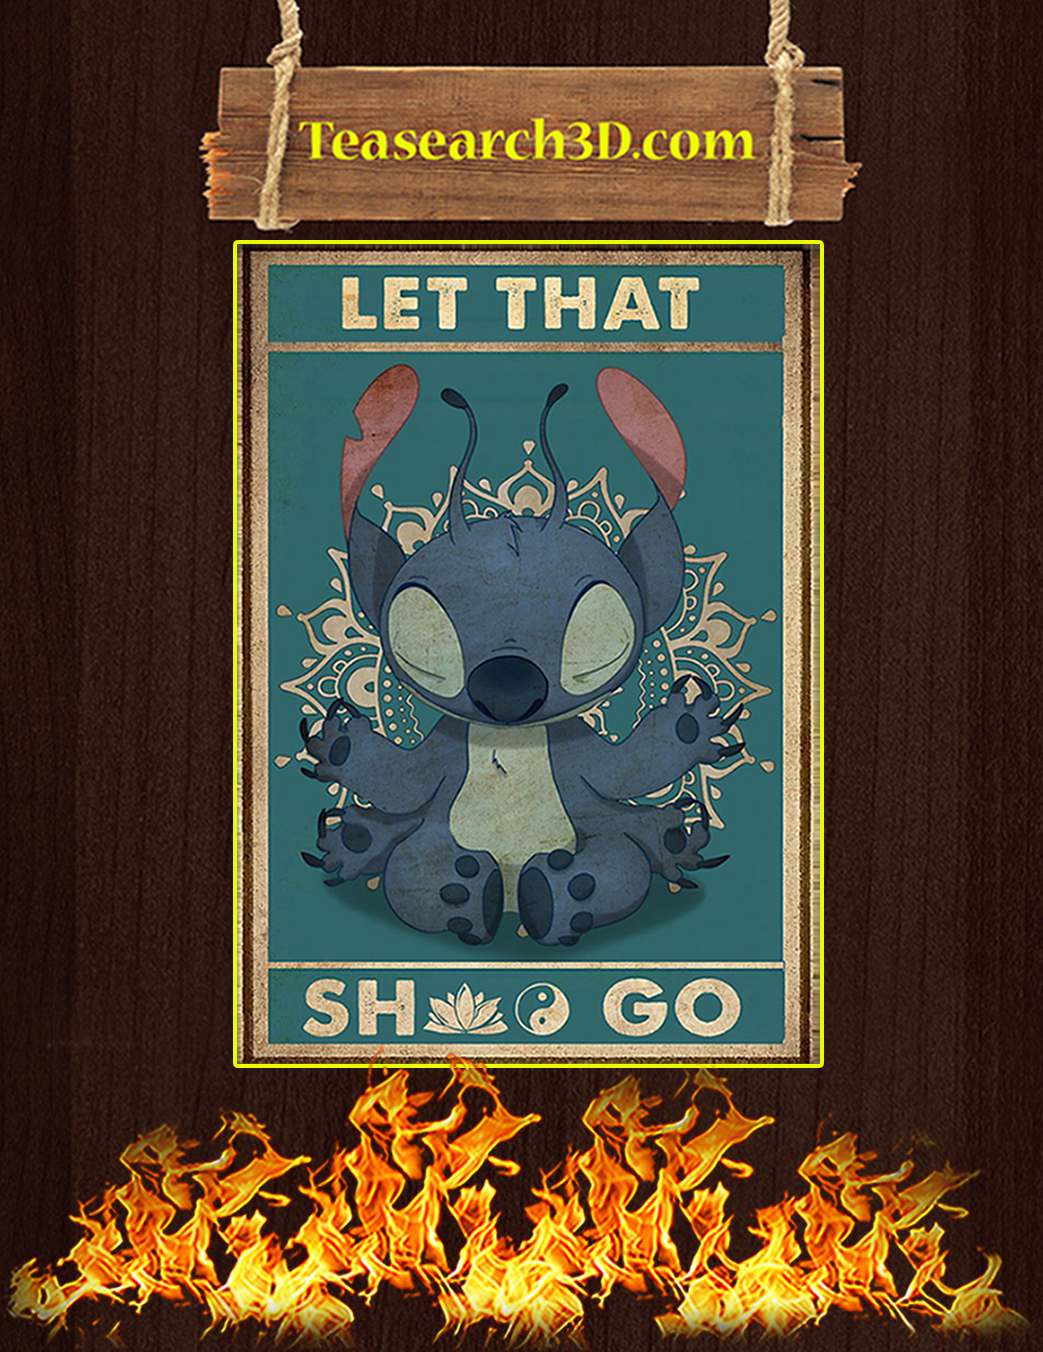 Stitch yoga let that shit go poster A1